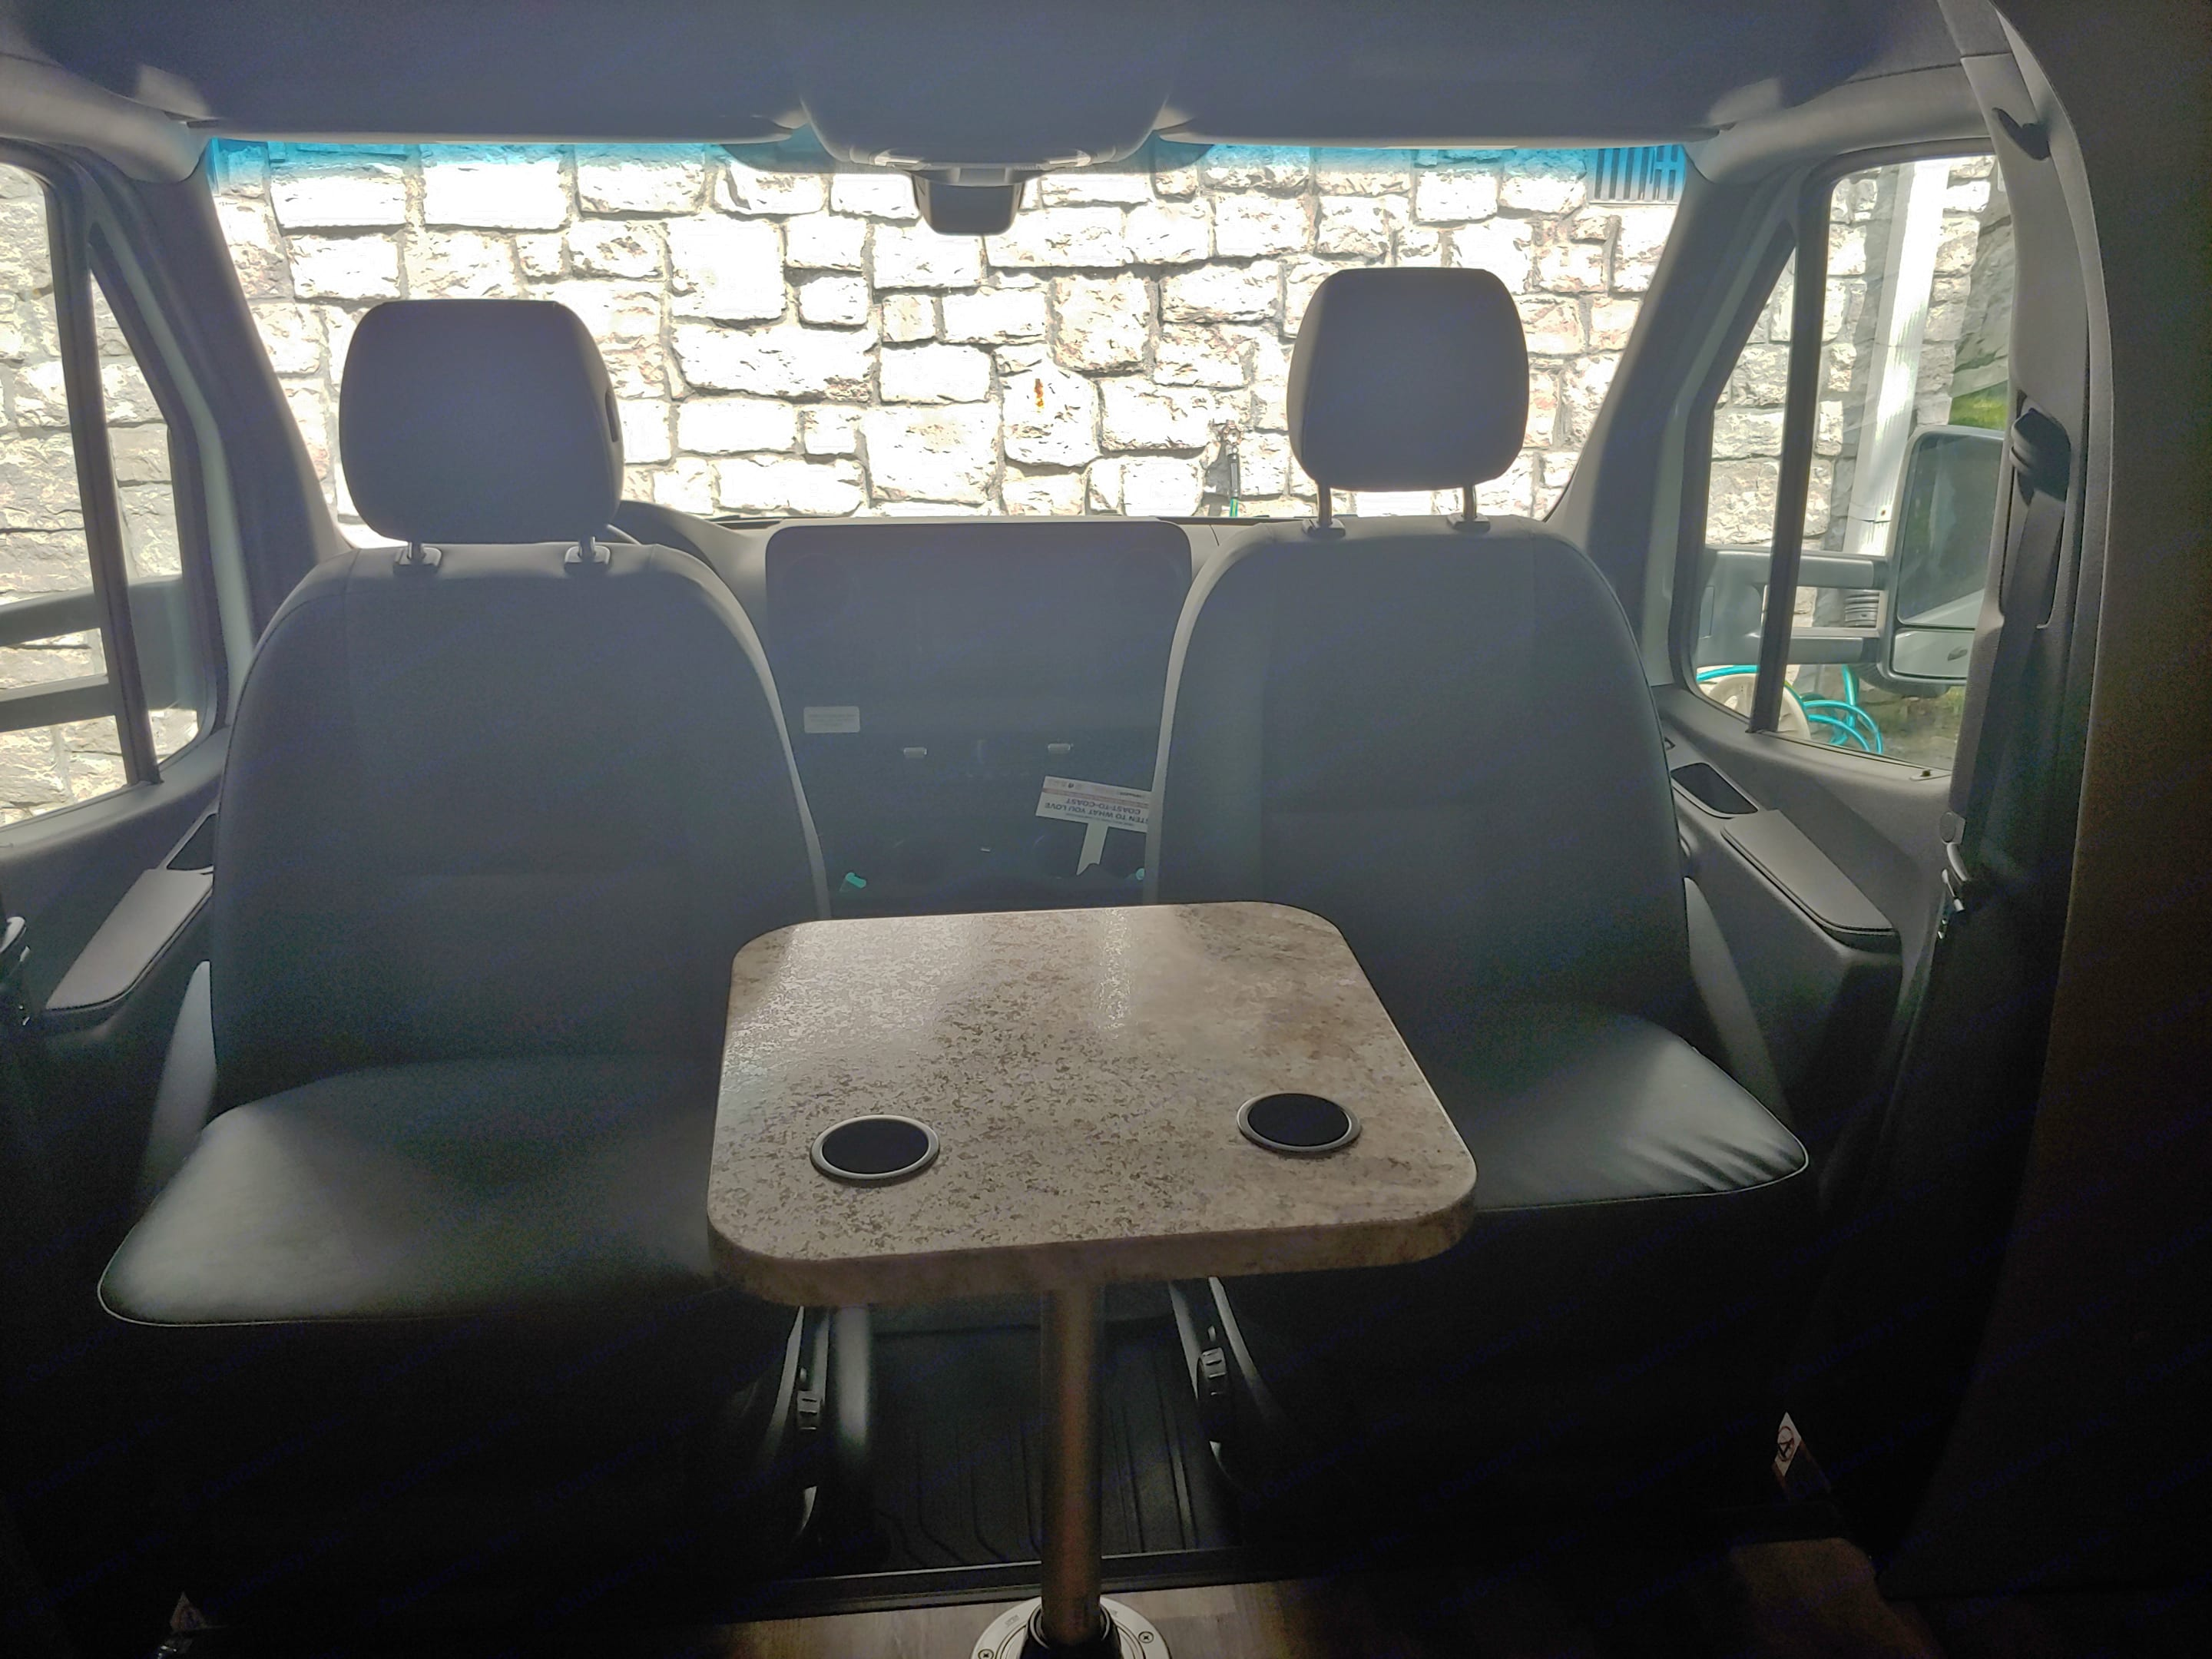 Captain seat spin to face the RV plus added table. Jayco Melbourne 2019